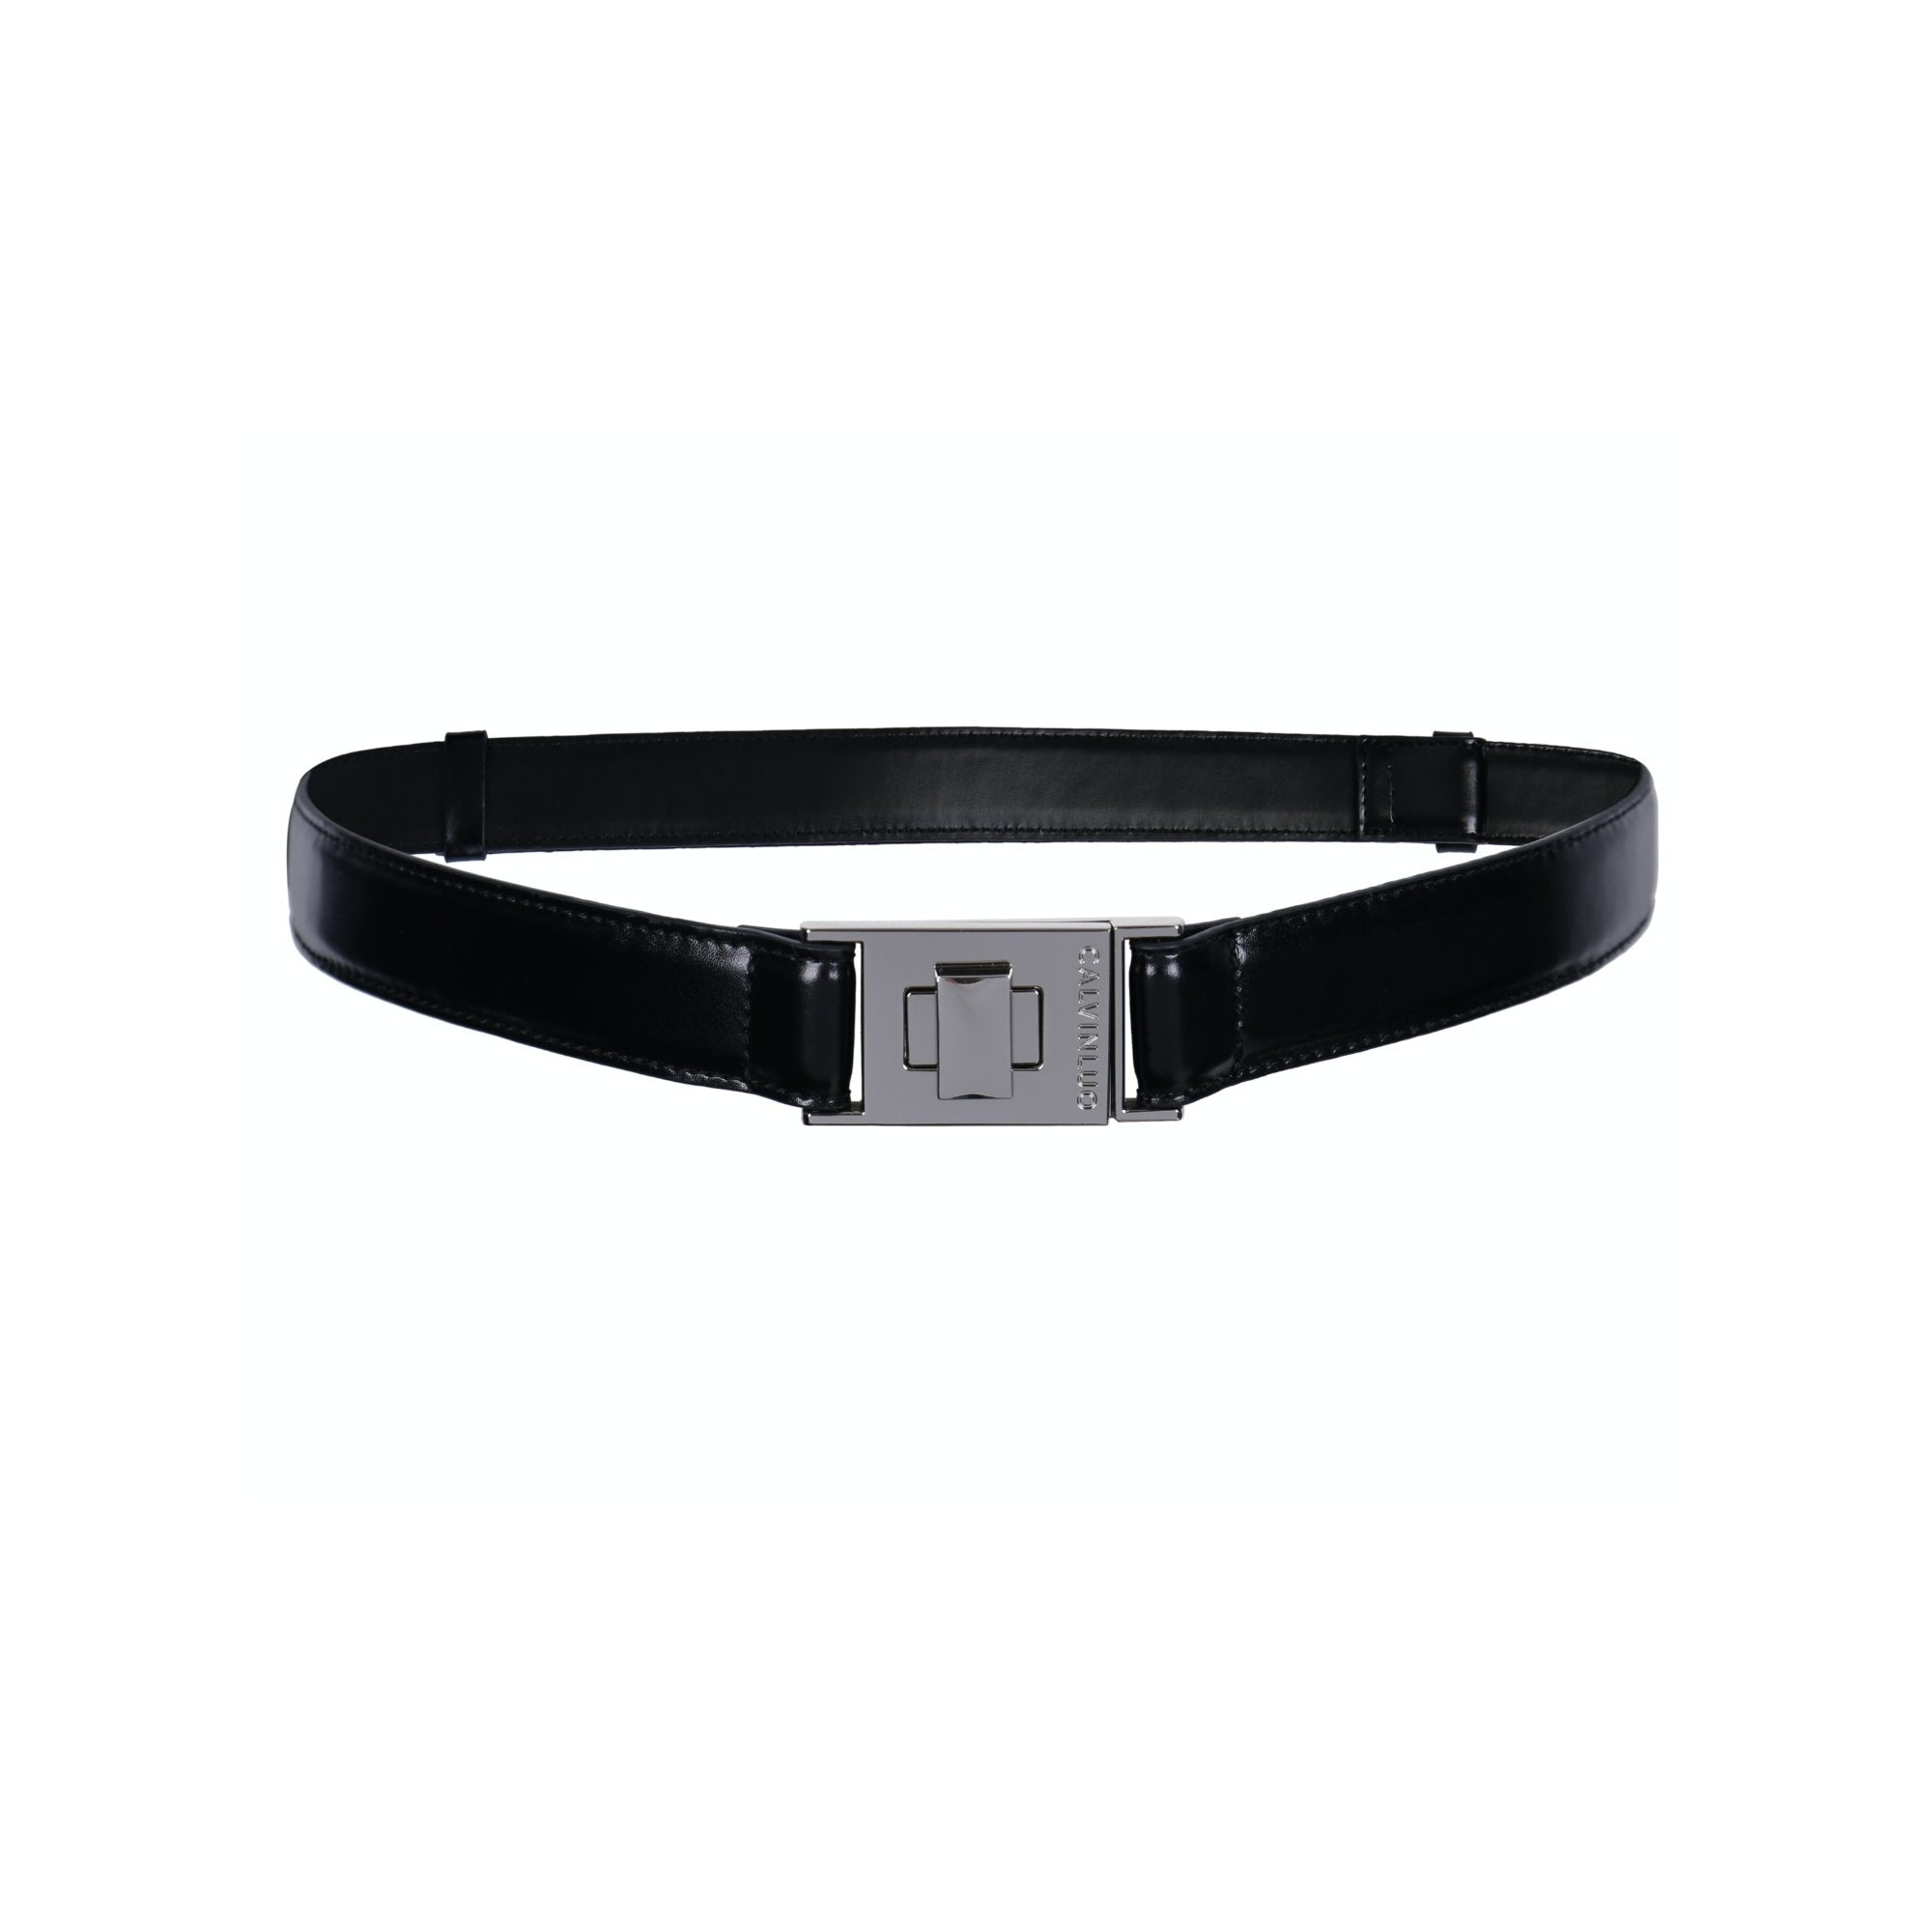 CALVIN LUO Black Twist-Lock Leather Belt | MADA IN CHINA